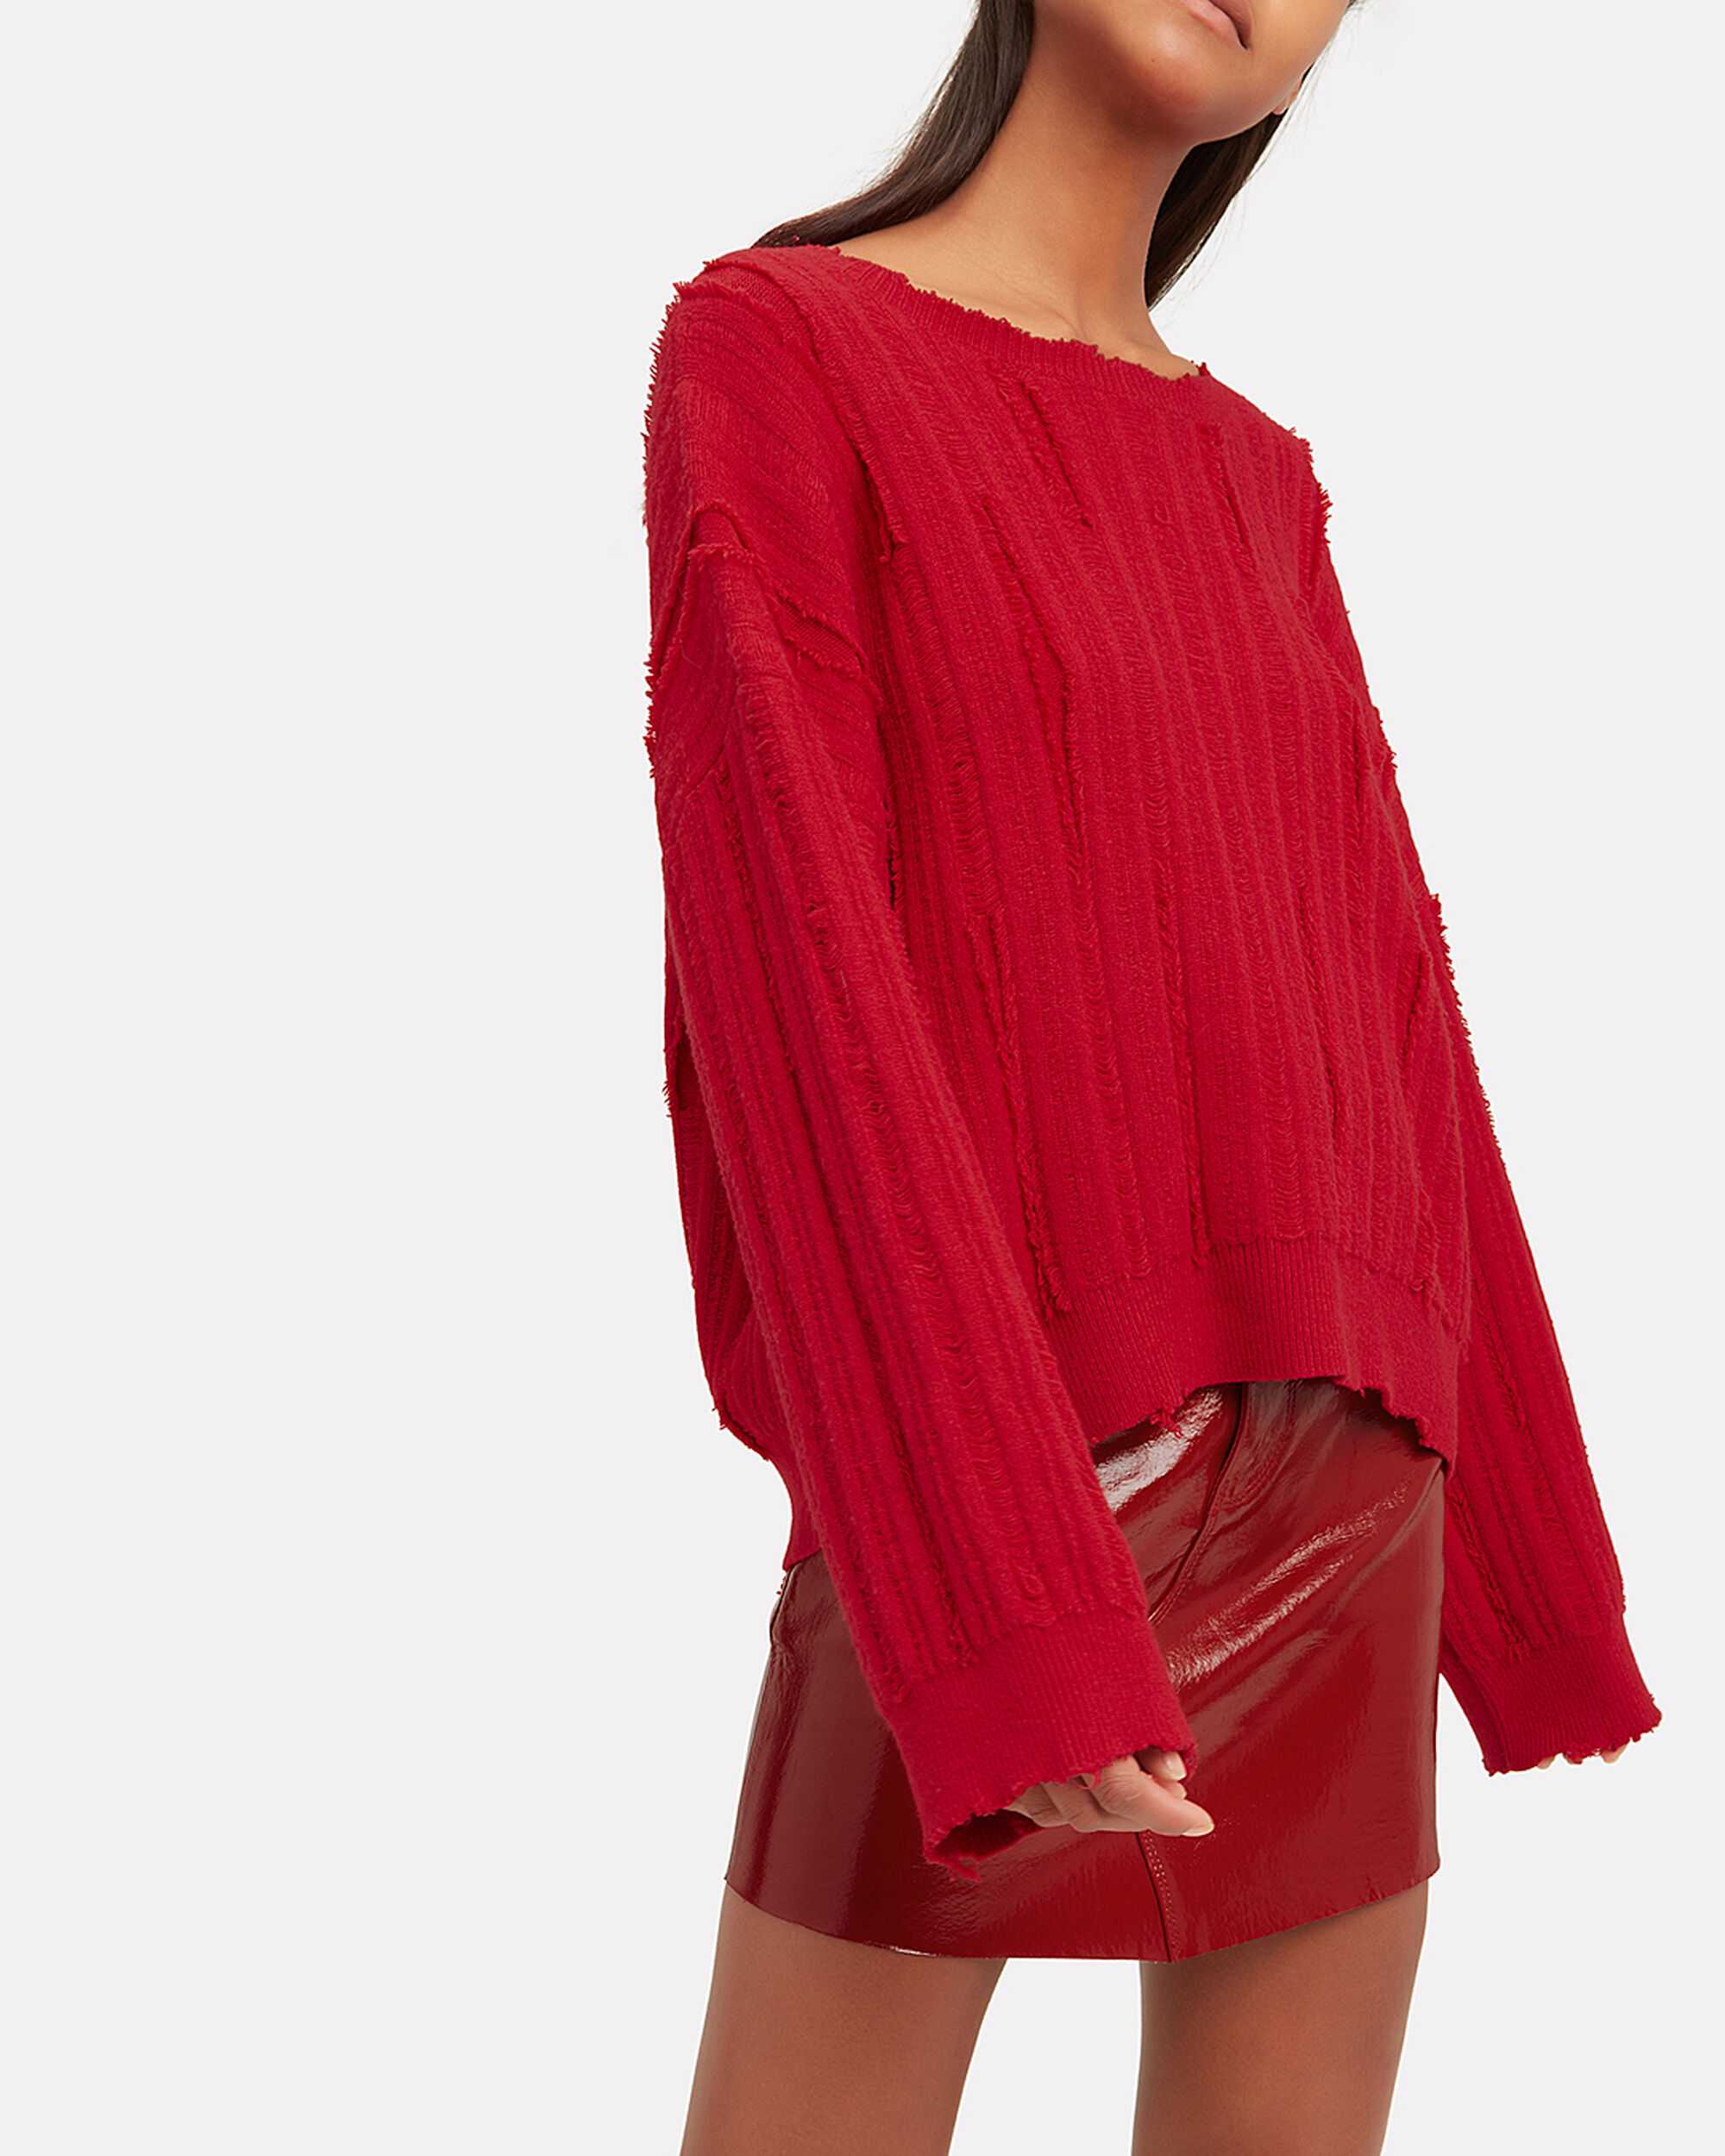 Emmet Distressed Cherry Red Sweater, cherry red, hi-res